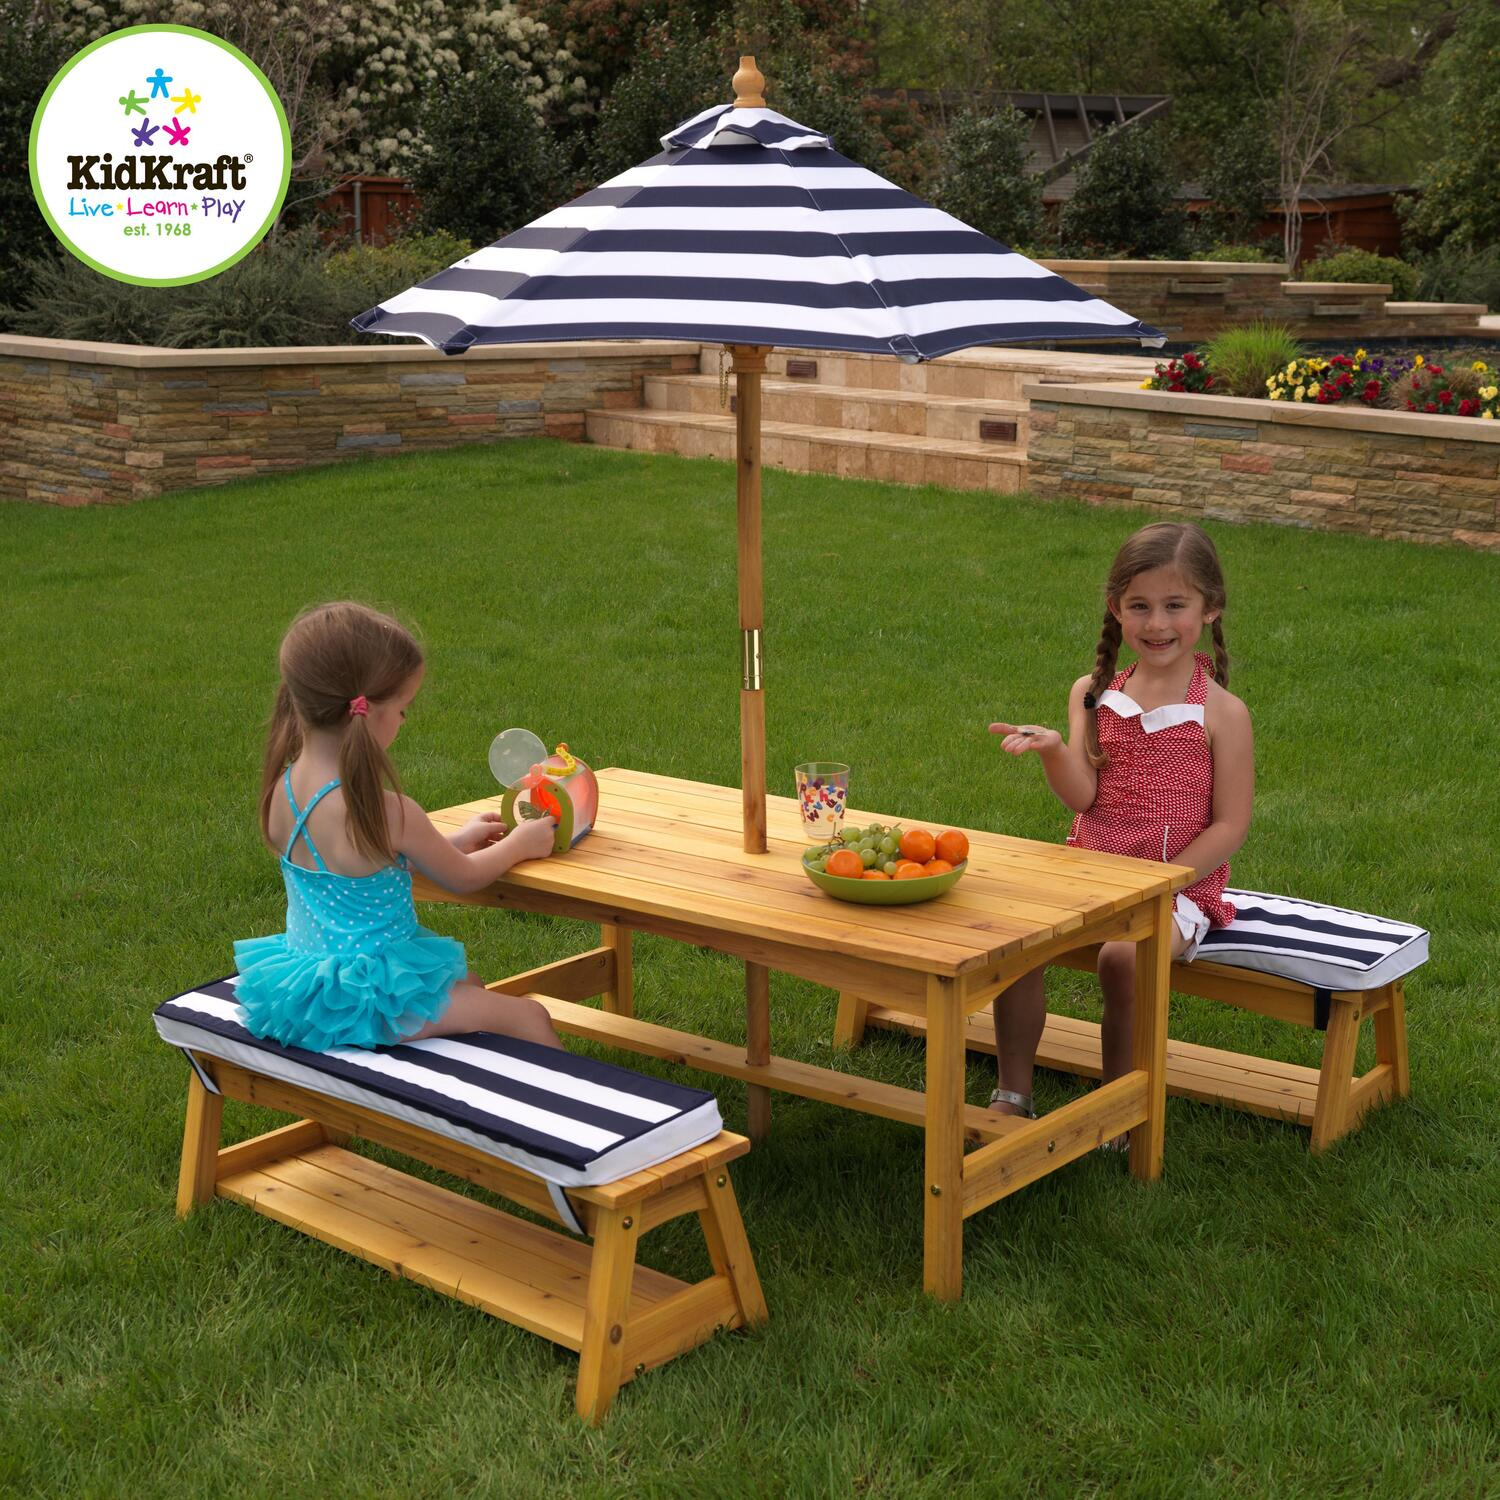 Kidkraft outdoor table bench set with cushions an for Outdoor table set